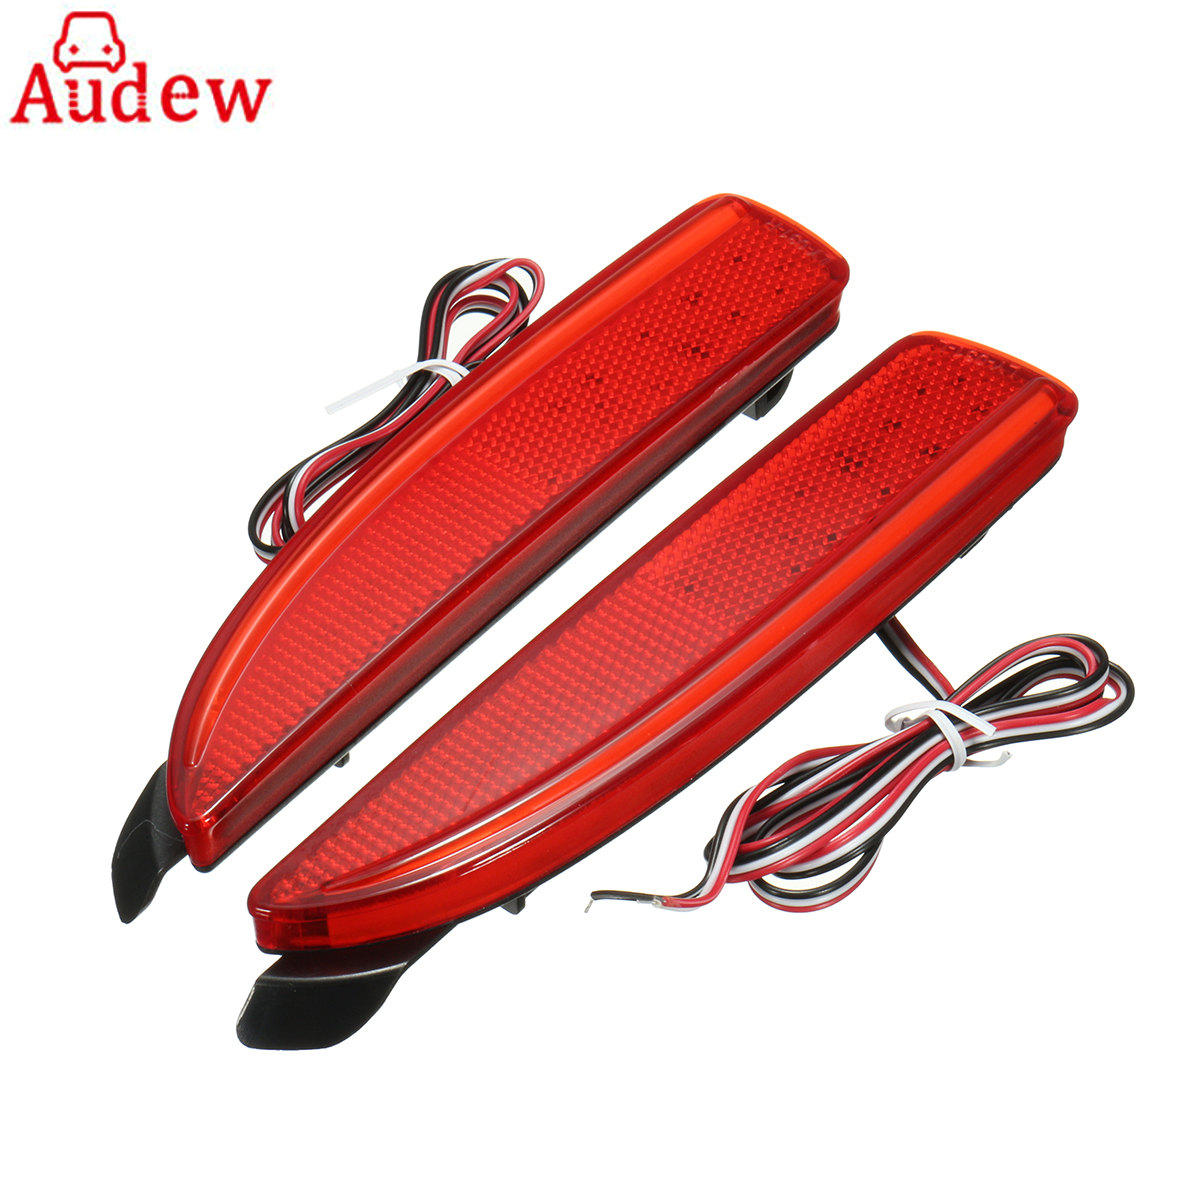 2Pcs Red Car LED Lamp Tail Rear Bumper Tail Brake Stop Running Light For Mazda 6 ATENZA 2014-2016 dongzhen fit for nissan bluebird sylphy almera led red rear bumper reflectors light night running brake warning lights lamp